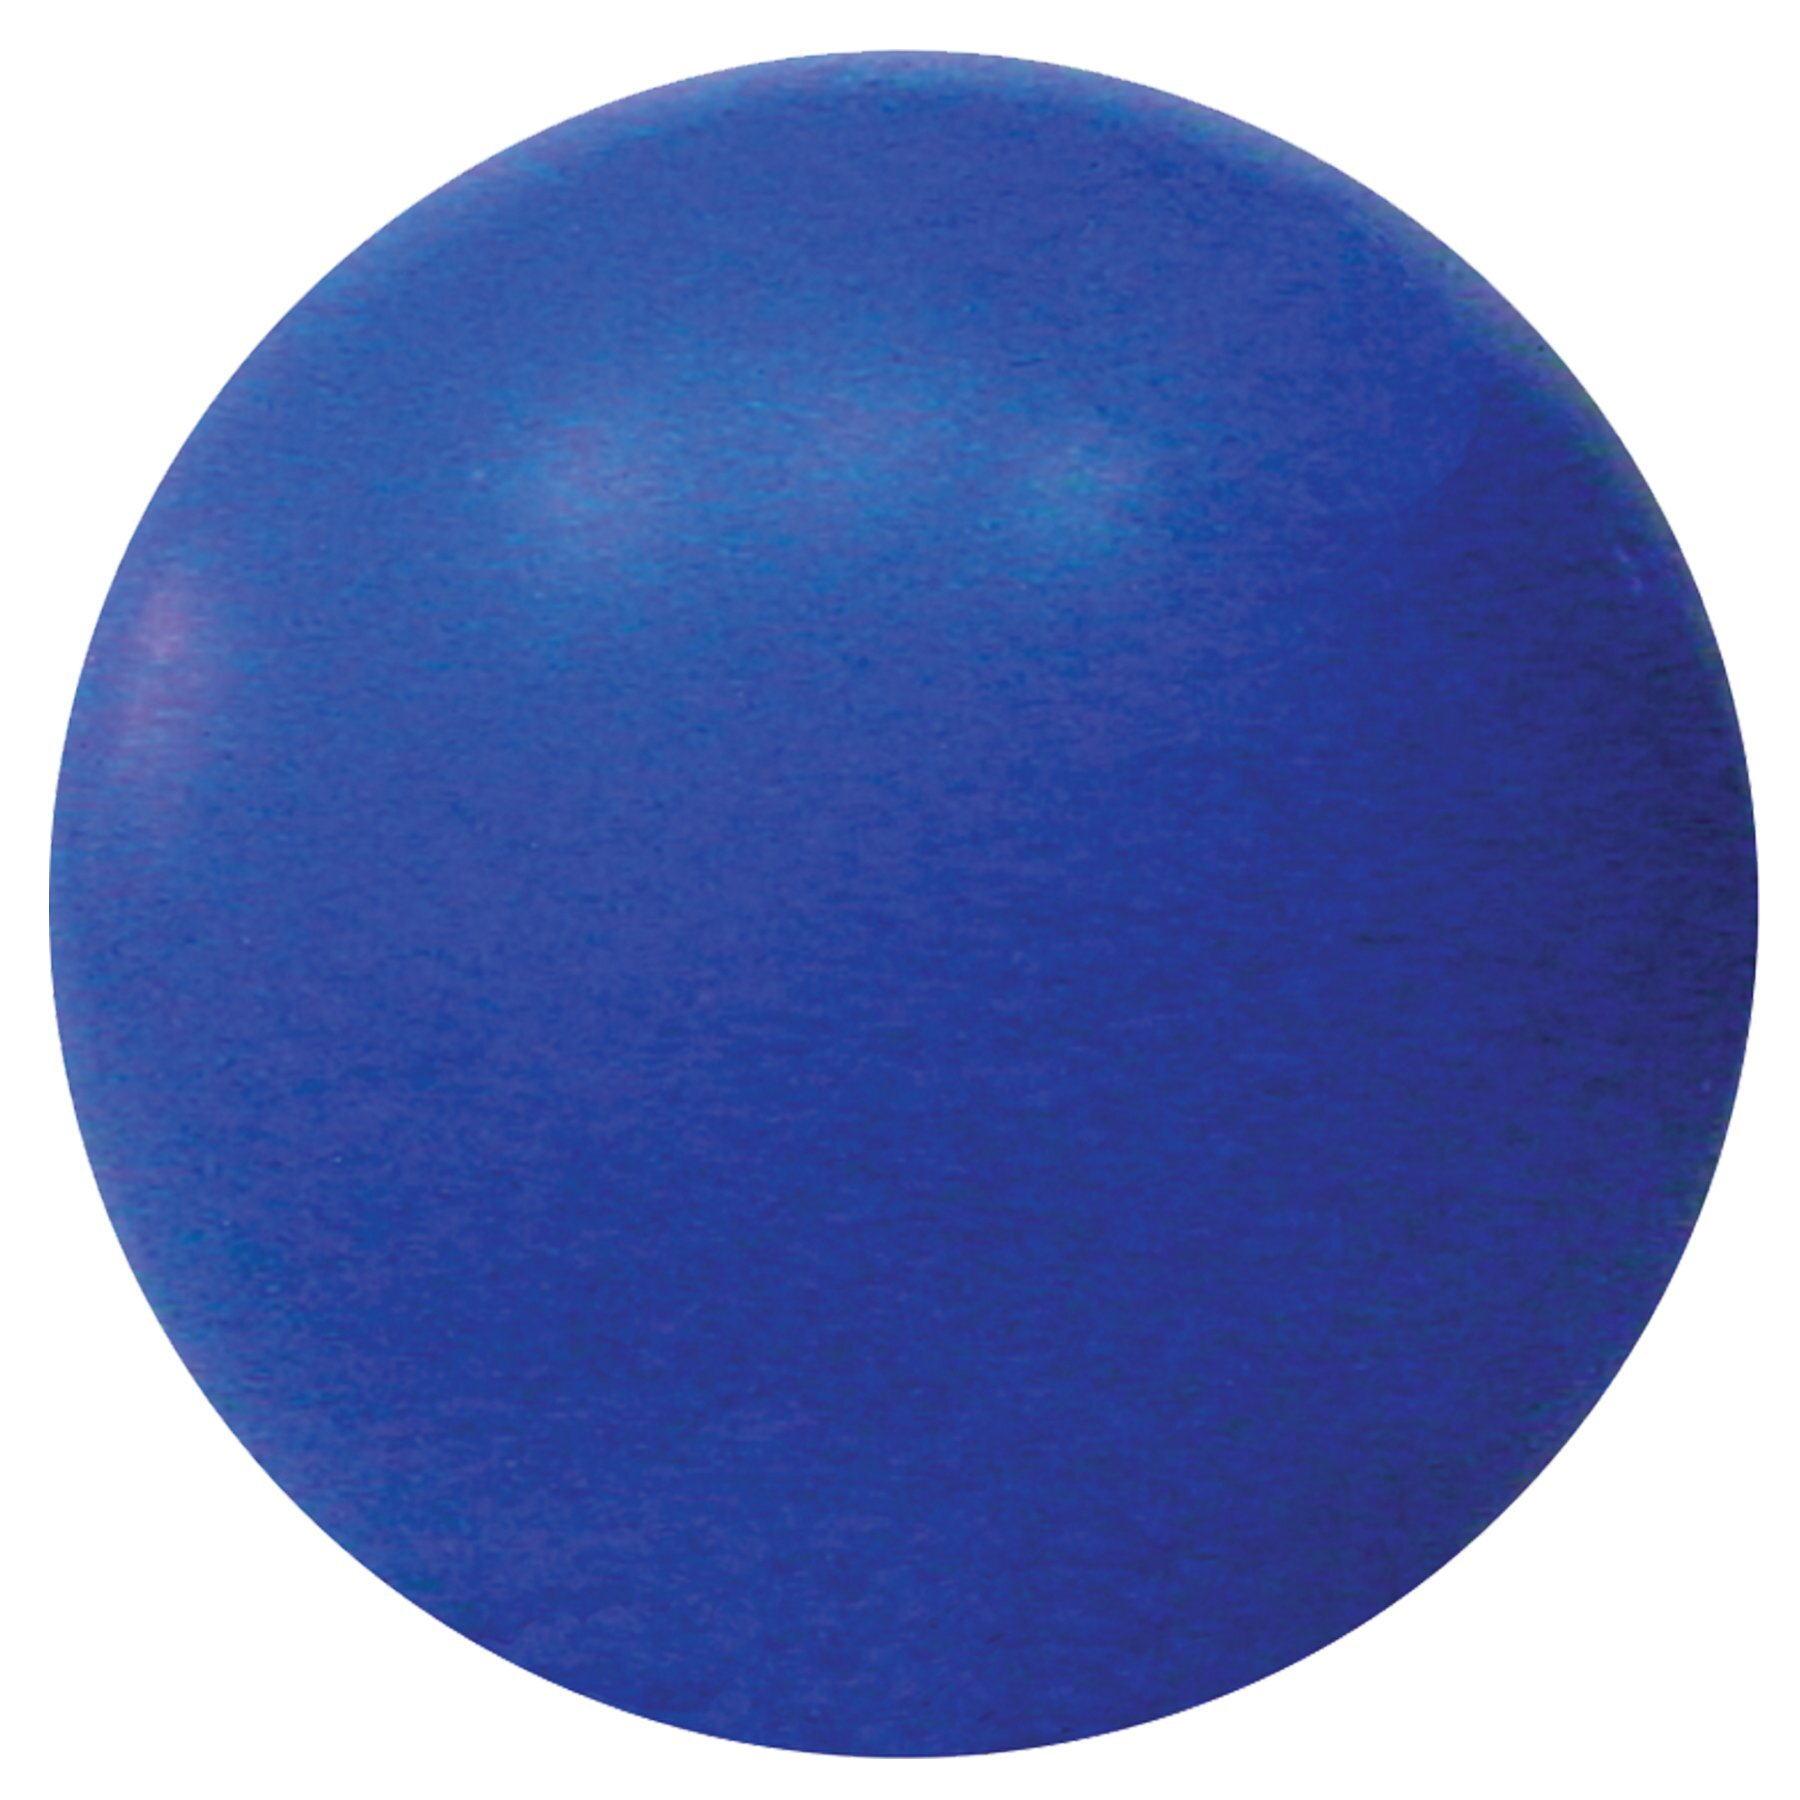 Gravity GRIPP® Stress Ball